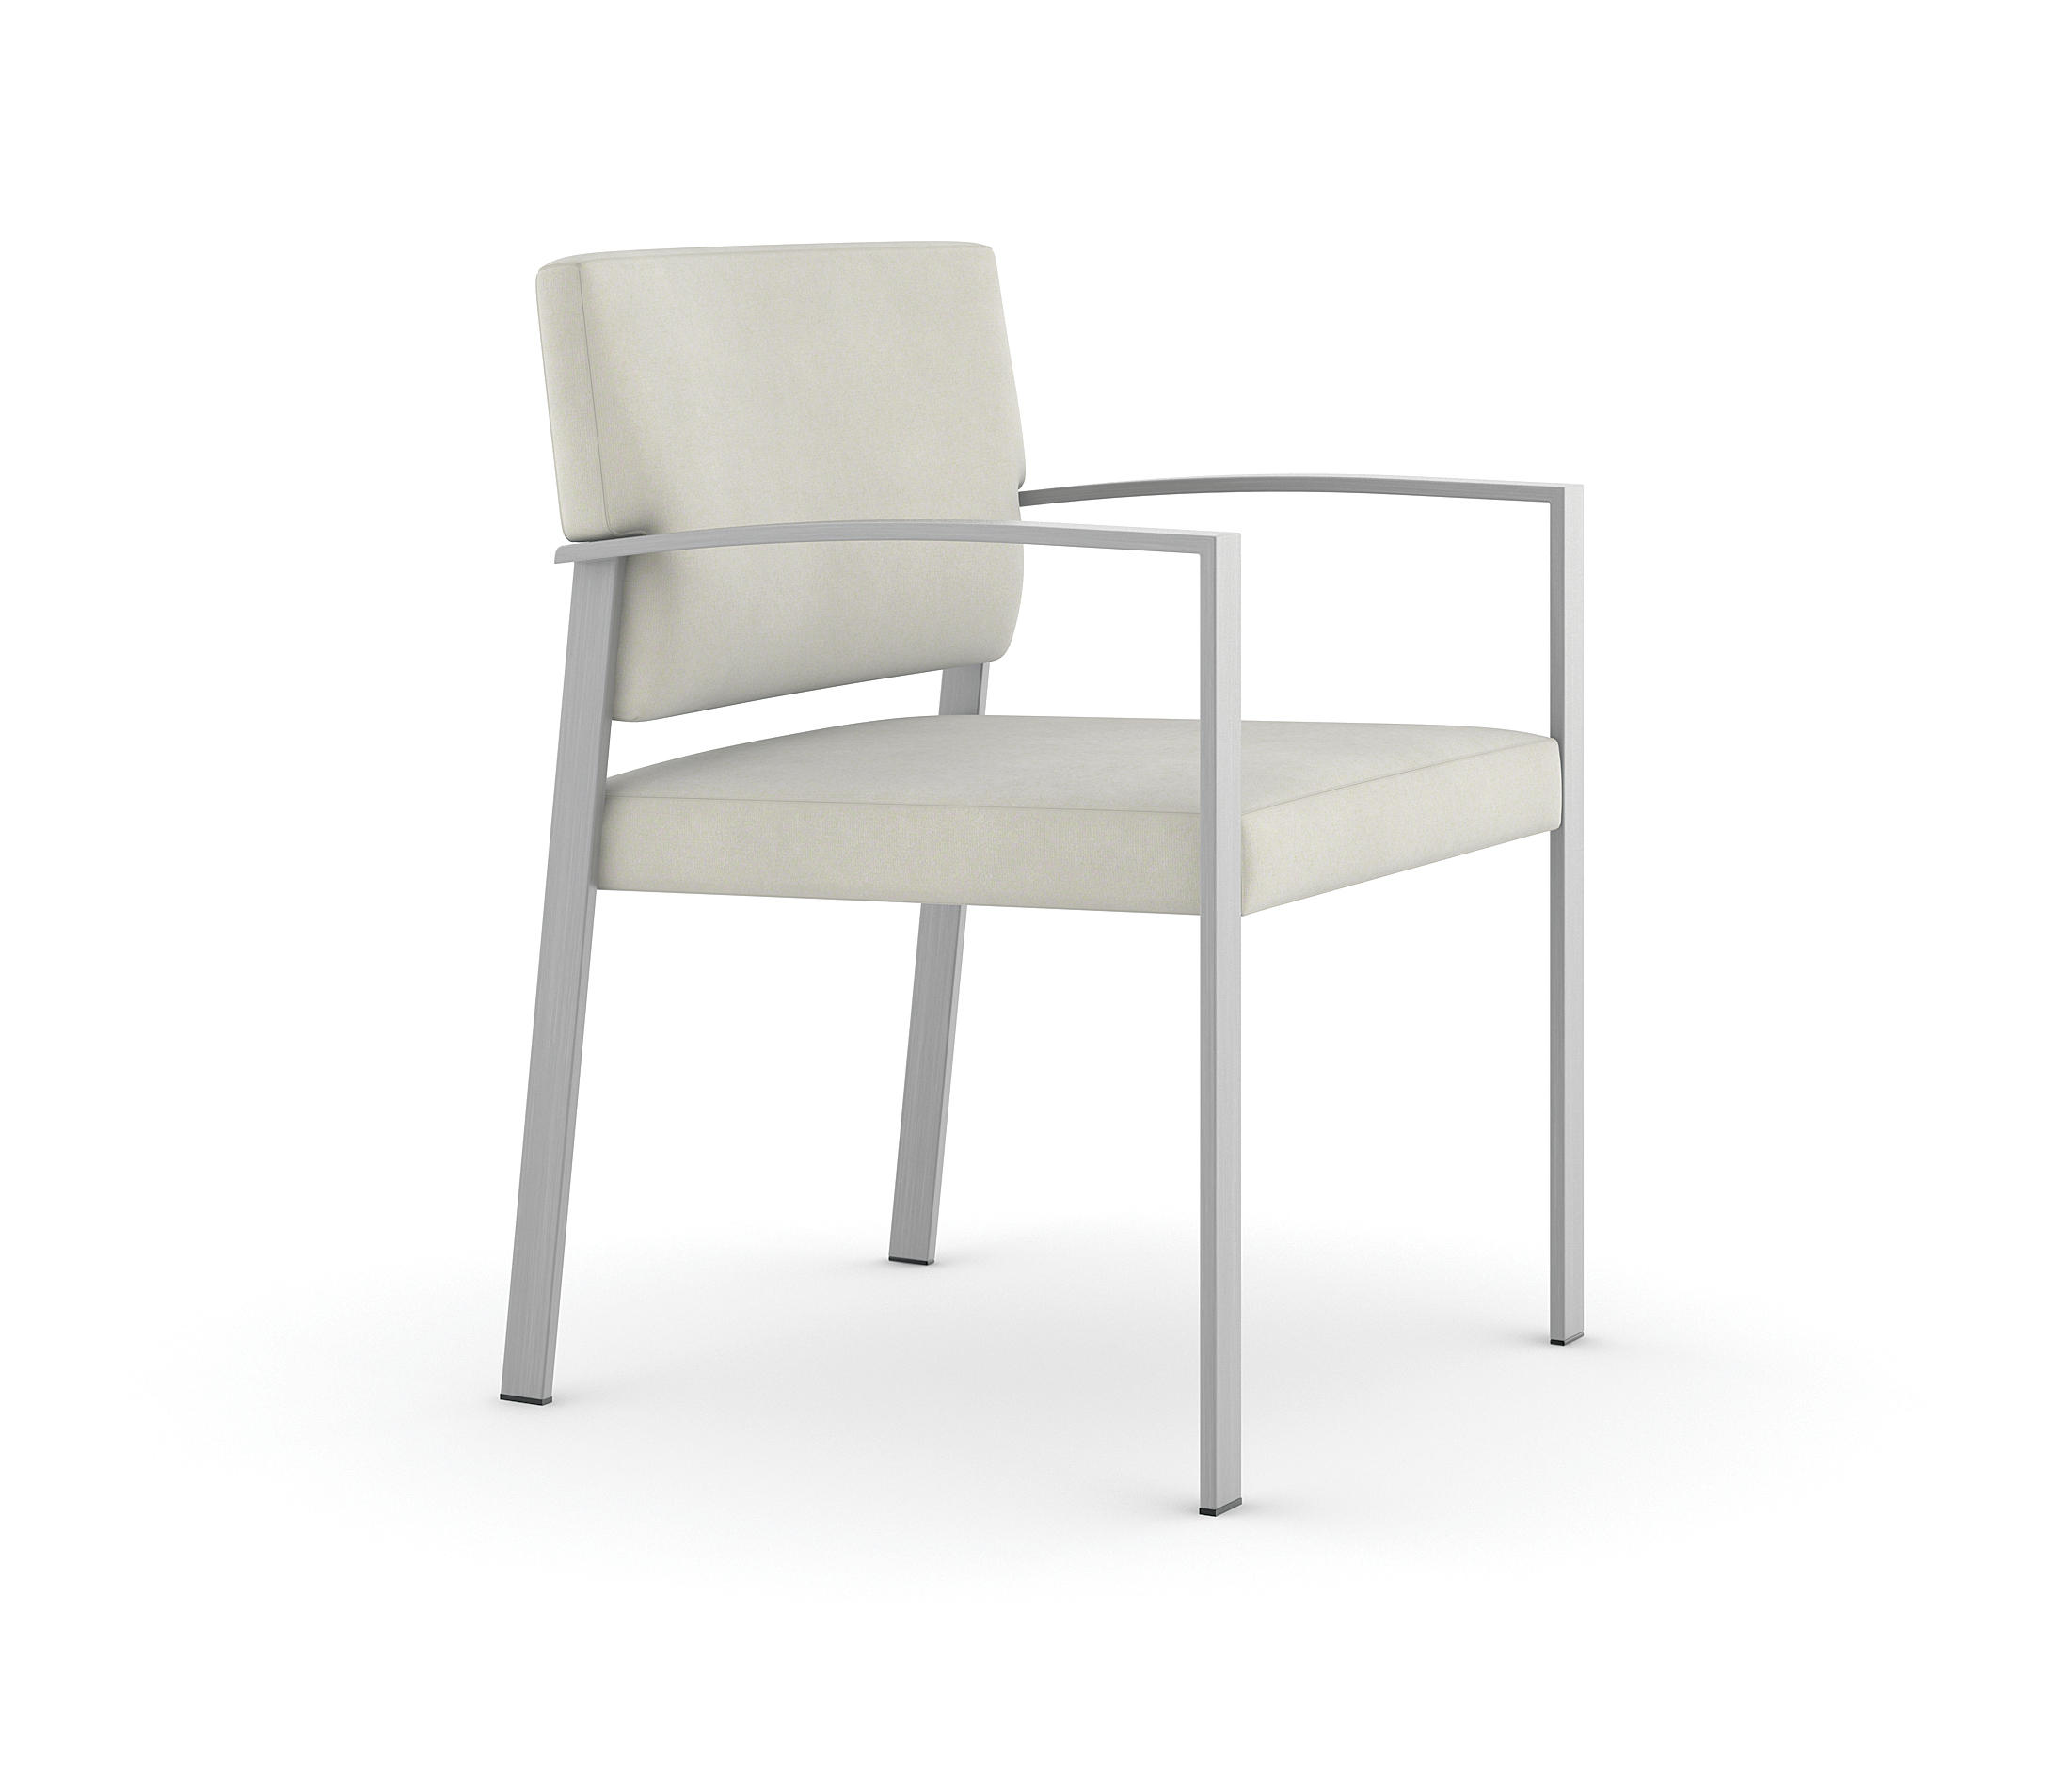 Steel Side Chair / Brushed Stainless Steel Frame By Trinity Furniture |  Elderly Care Chairs